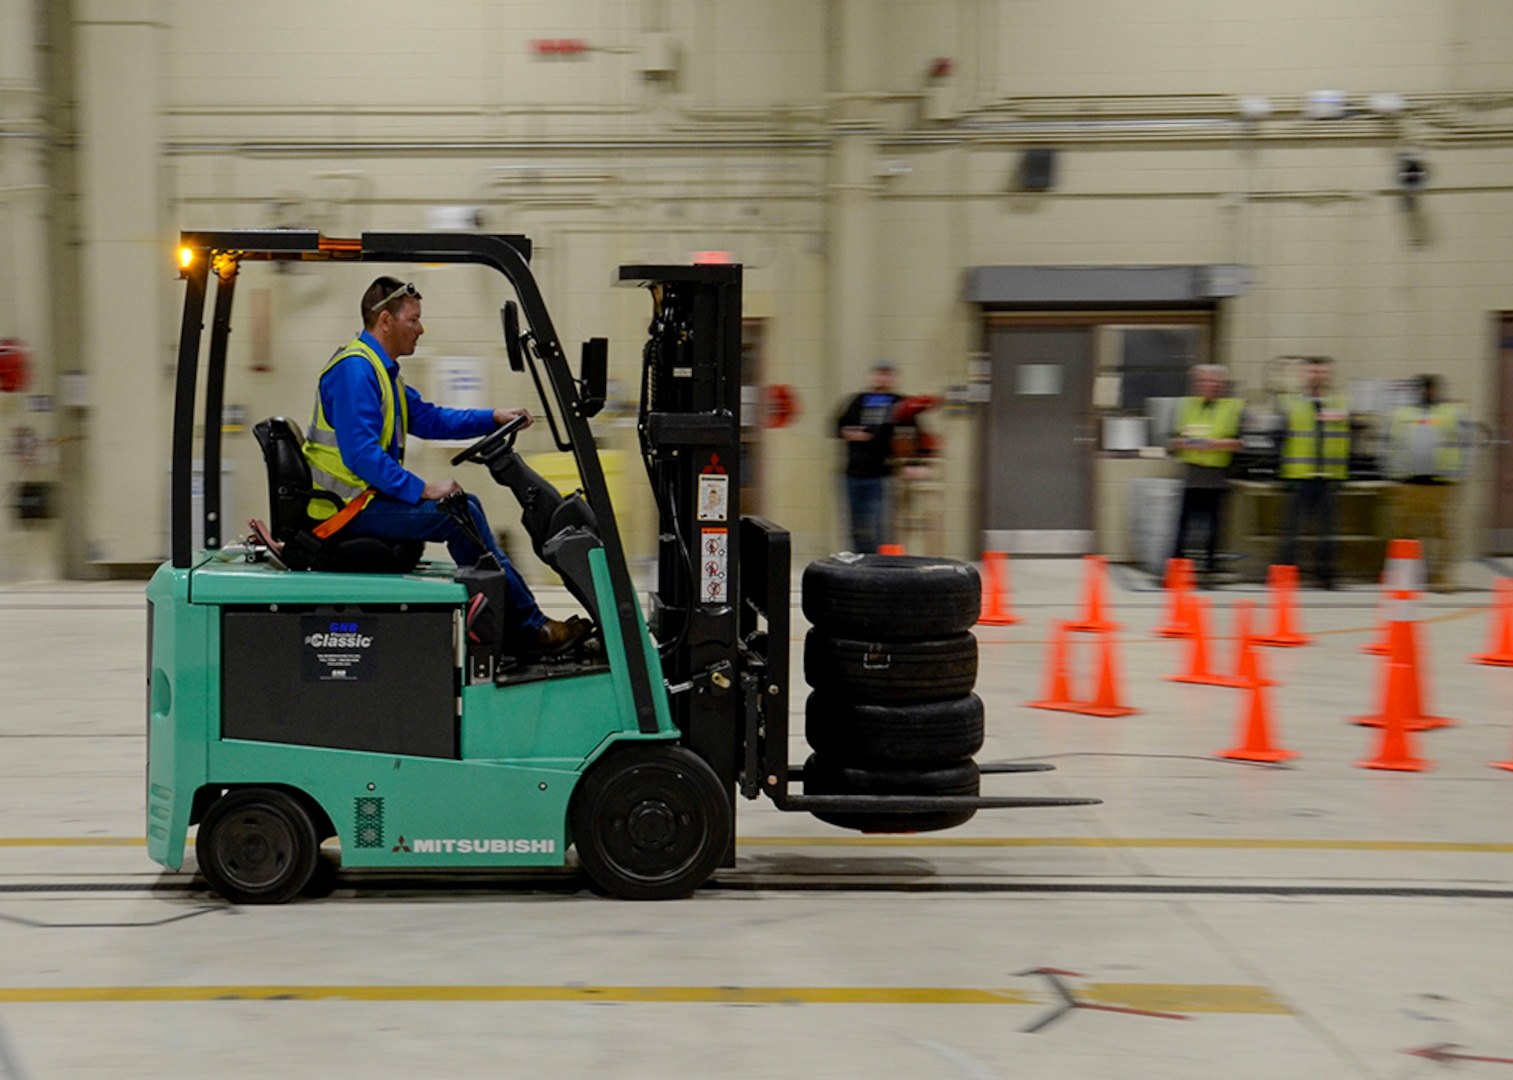 """Equipment Specialist David Gwartney, of the DLA Disposition Services at Arifjan site in Kuwait, navigates the """"Rubber Meets the Road"""" challenge on his way to a 2nd place finish at the inaugural Material Handling Equipment Rodeo in Battle Creek Oct. 25."""